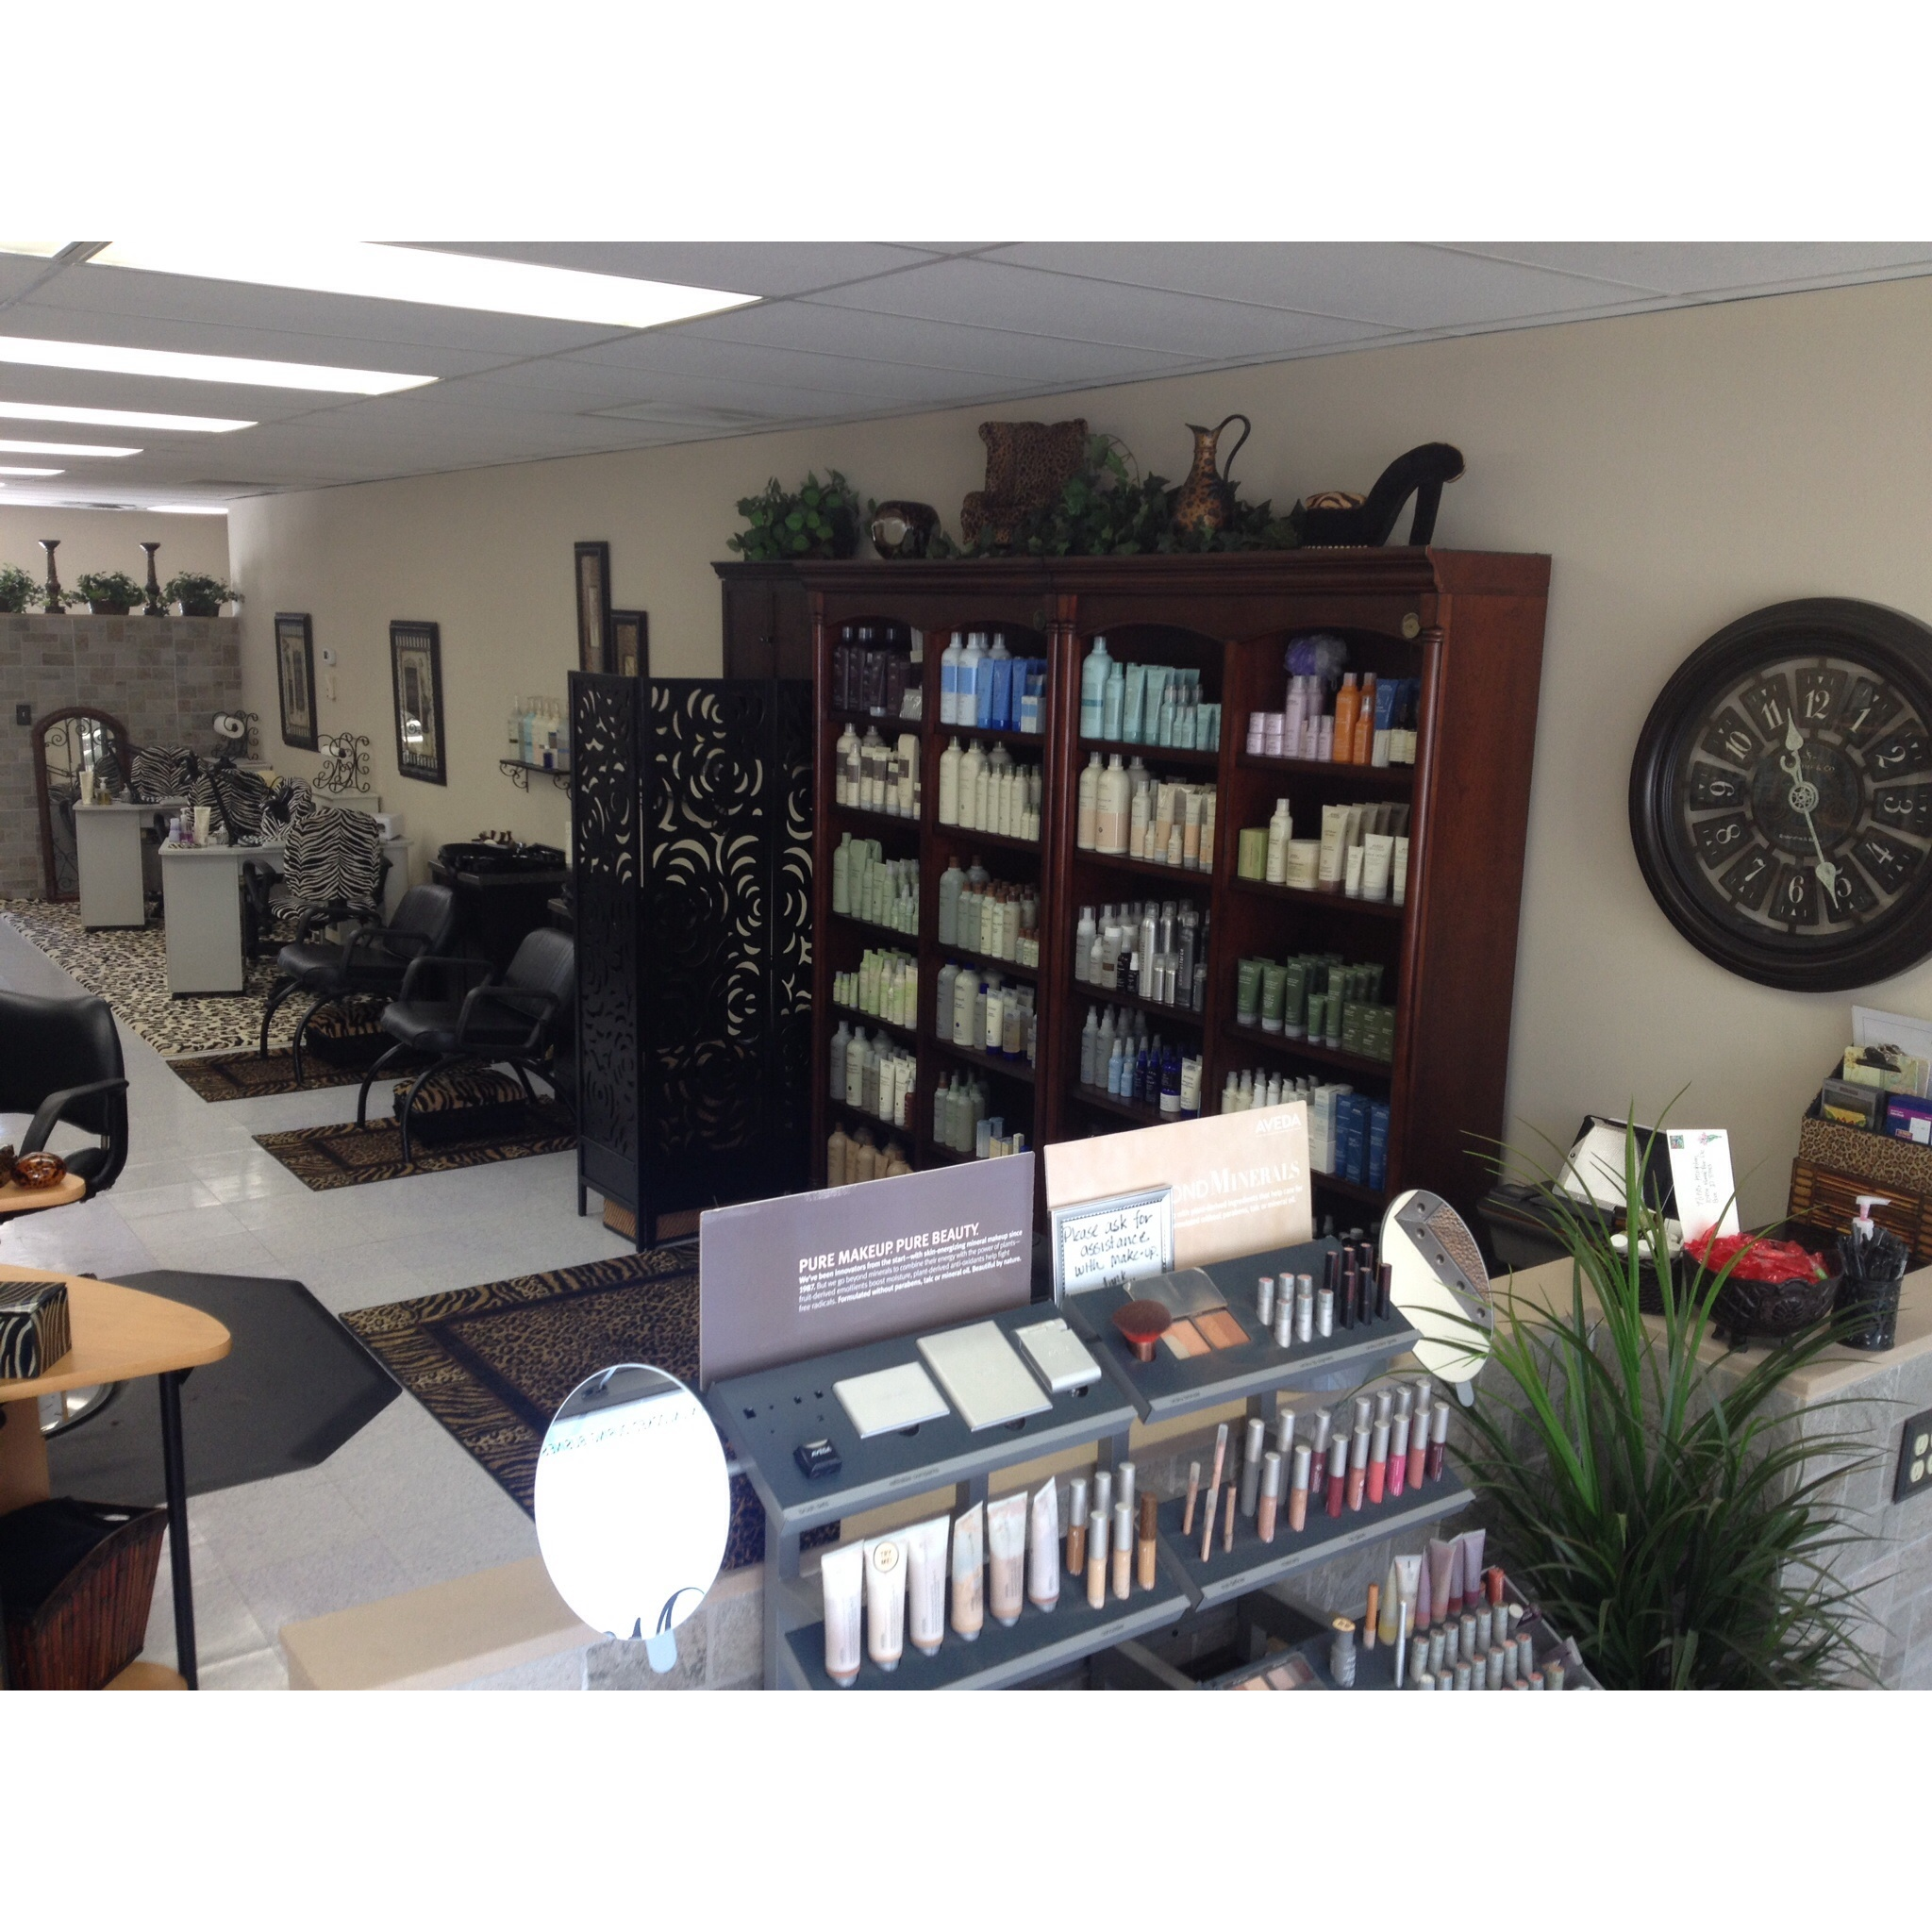 Mystique Salon and Spa - Boise, ID - Beauty Salons & Hair Care